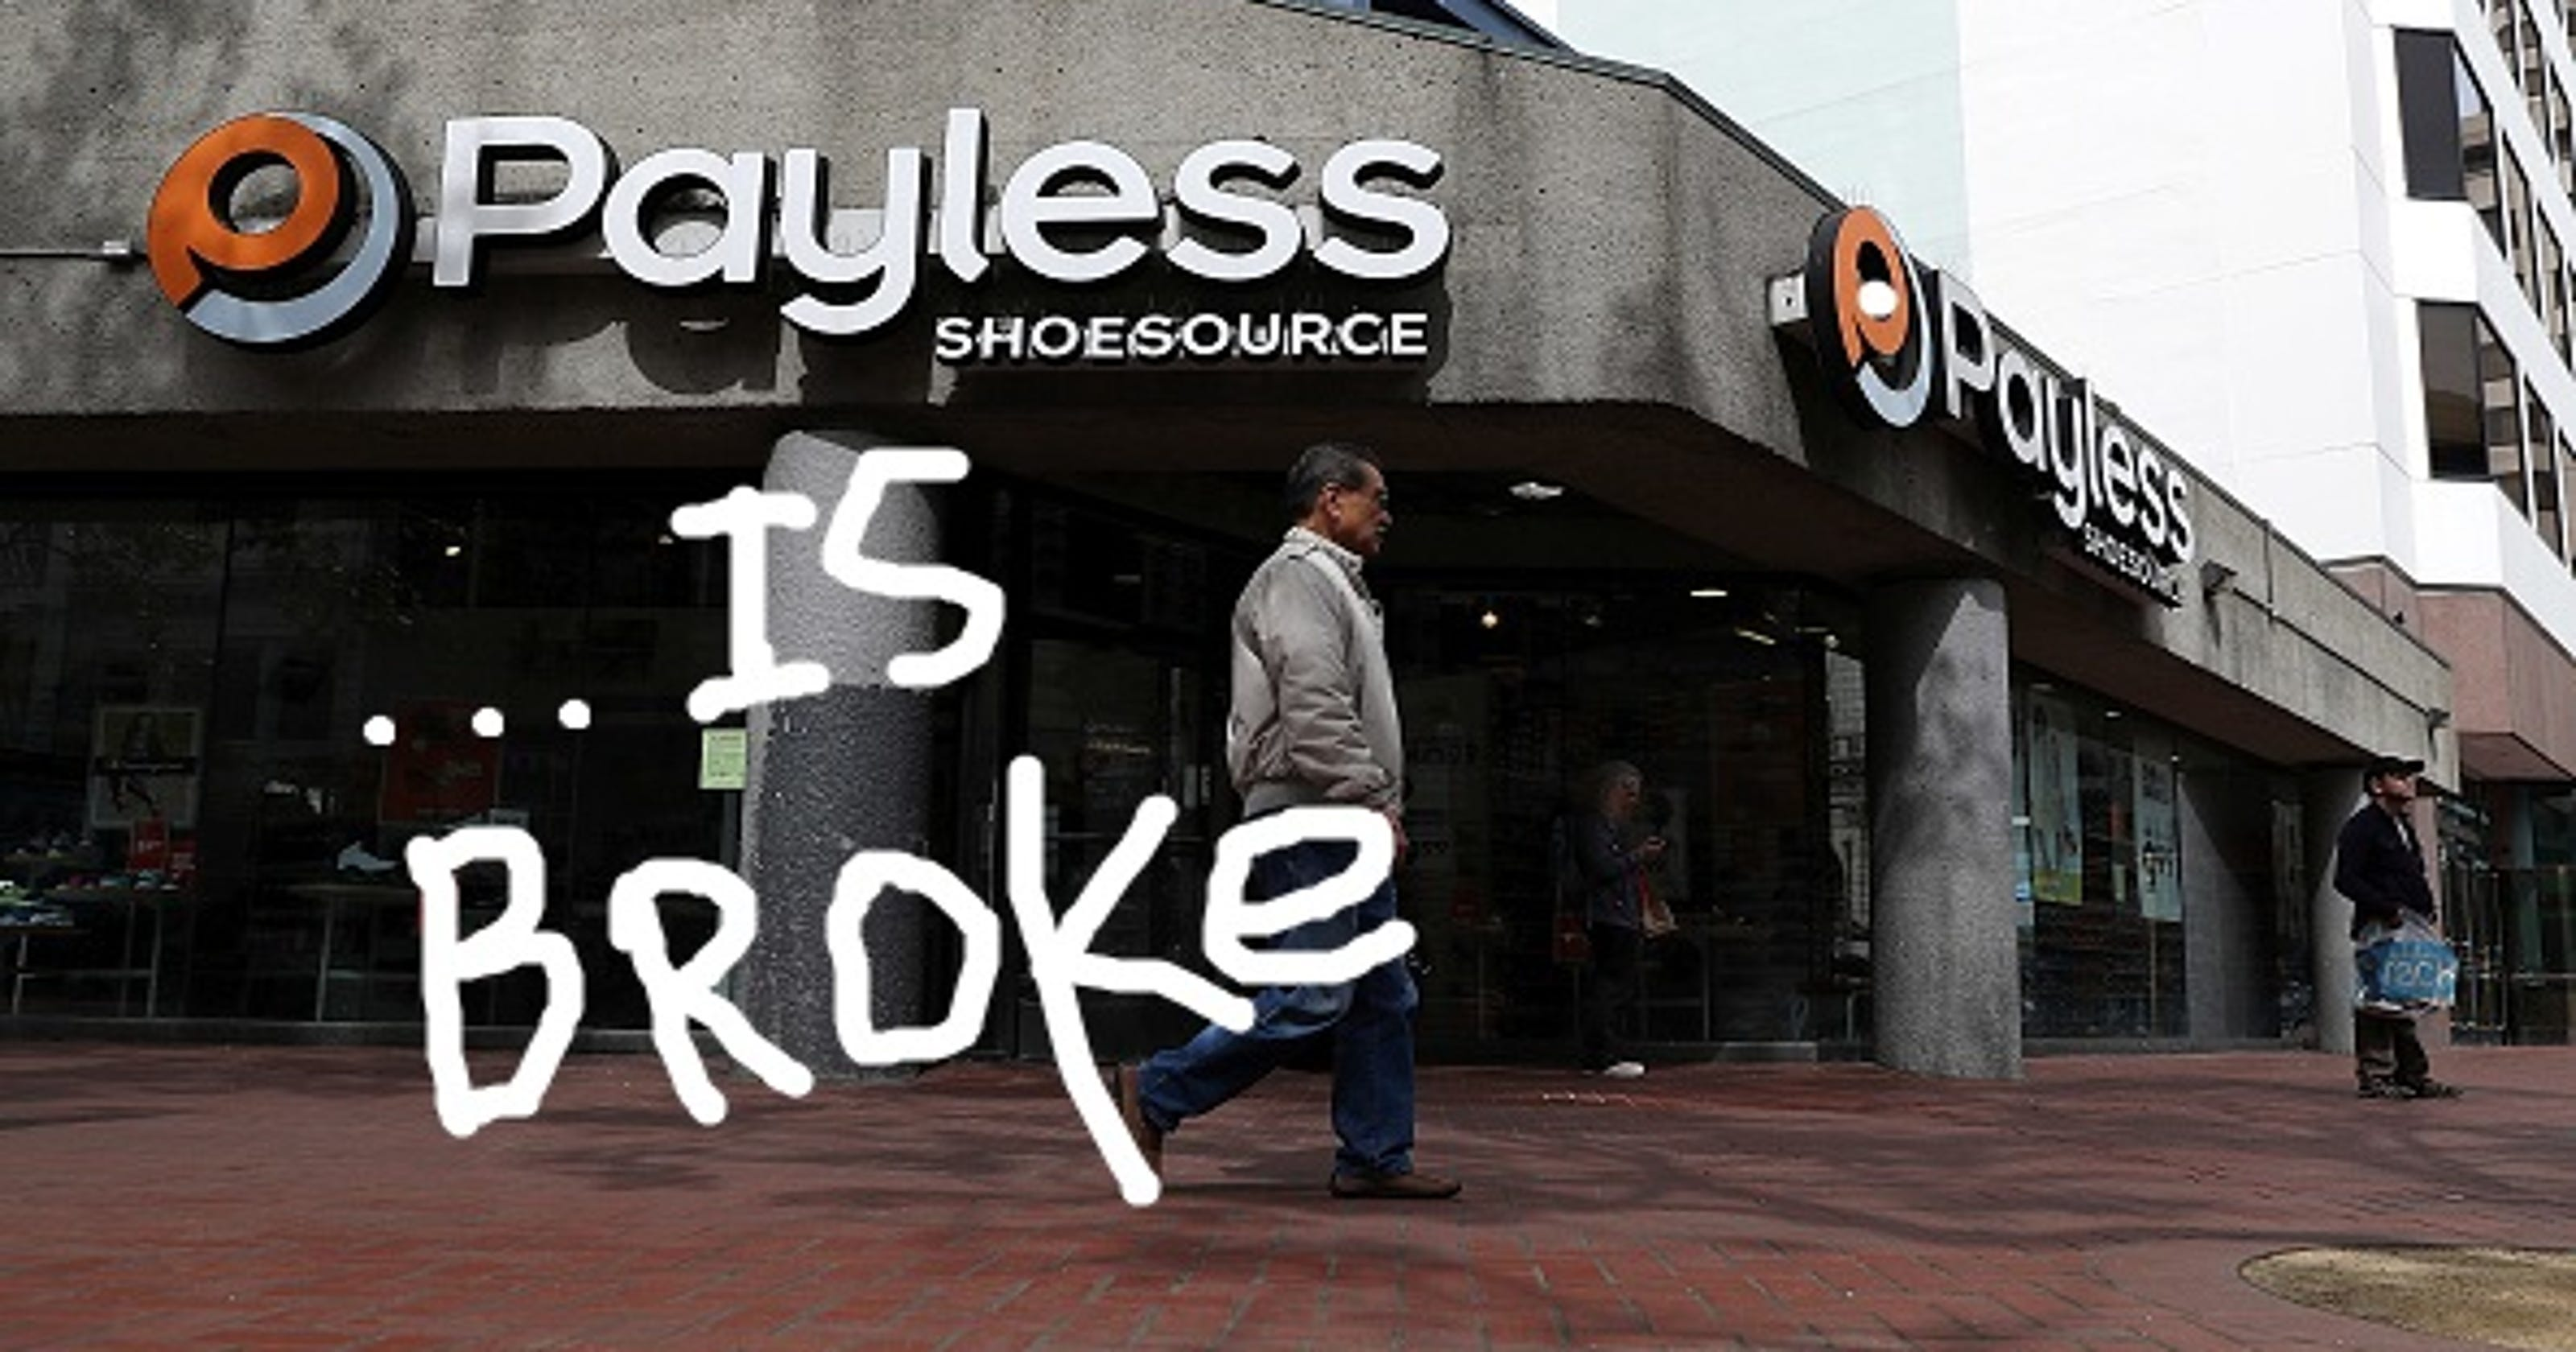 Bdb Man Shoots Woman In Weird Game Of En Payless Broke And Ula Ain T Worried Bout Nothin